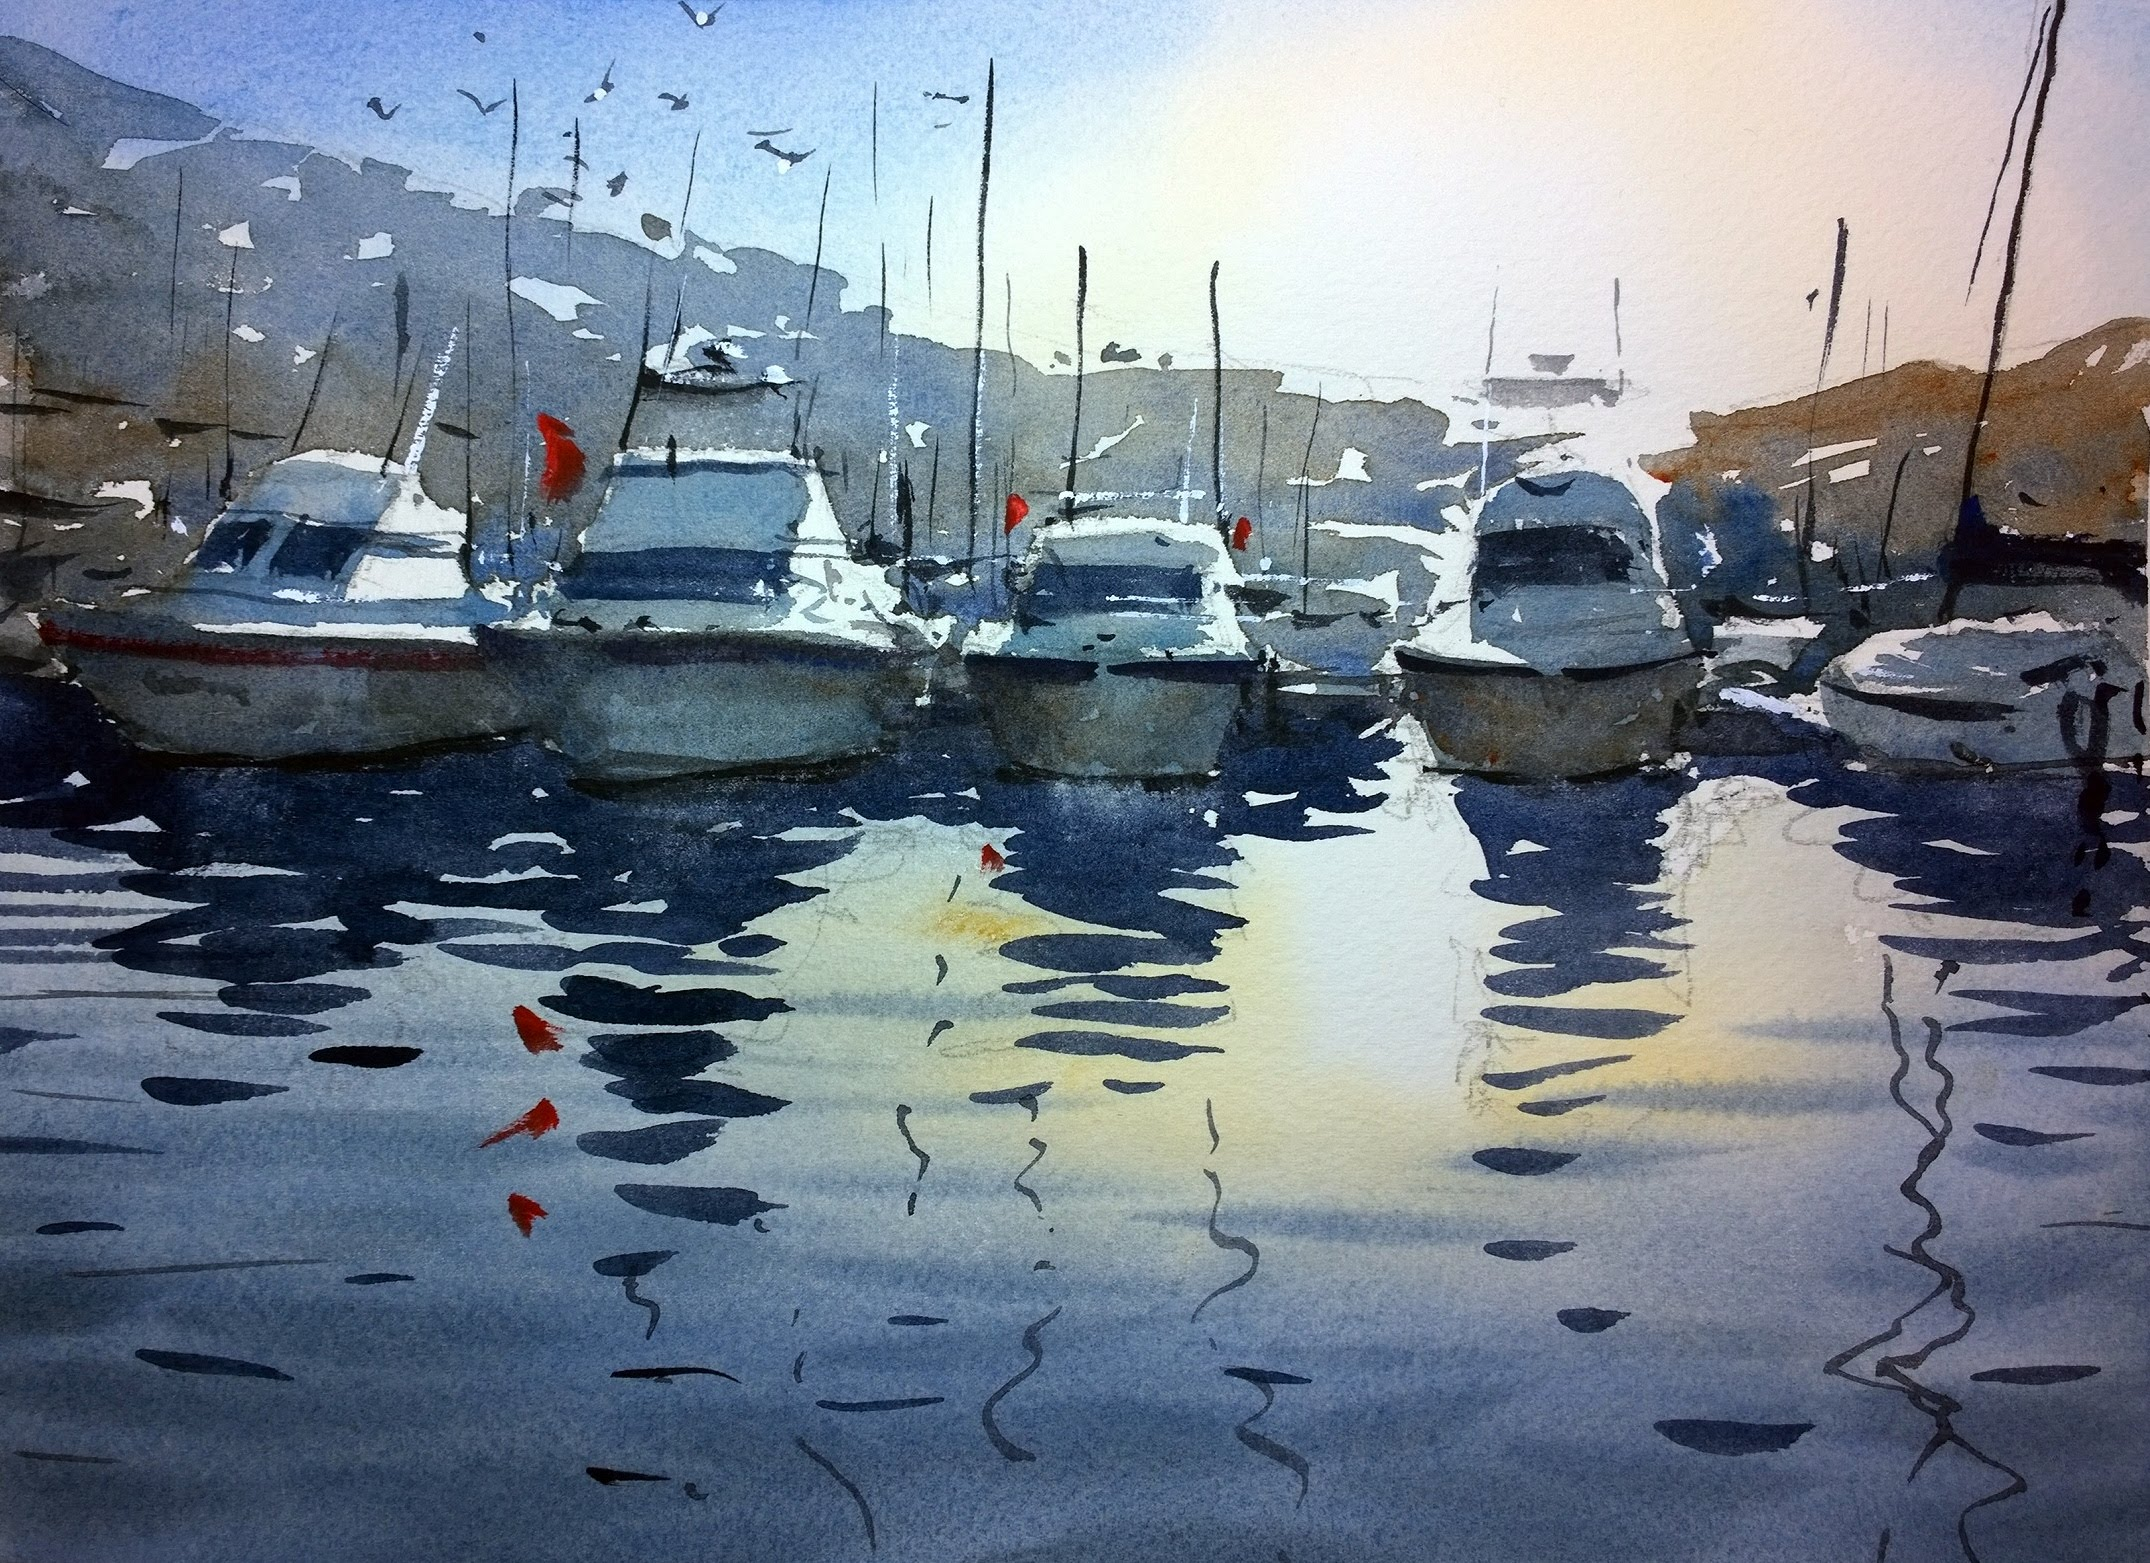 Boats in water photo